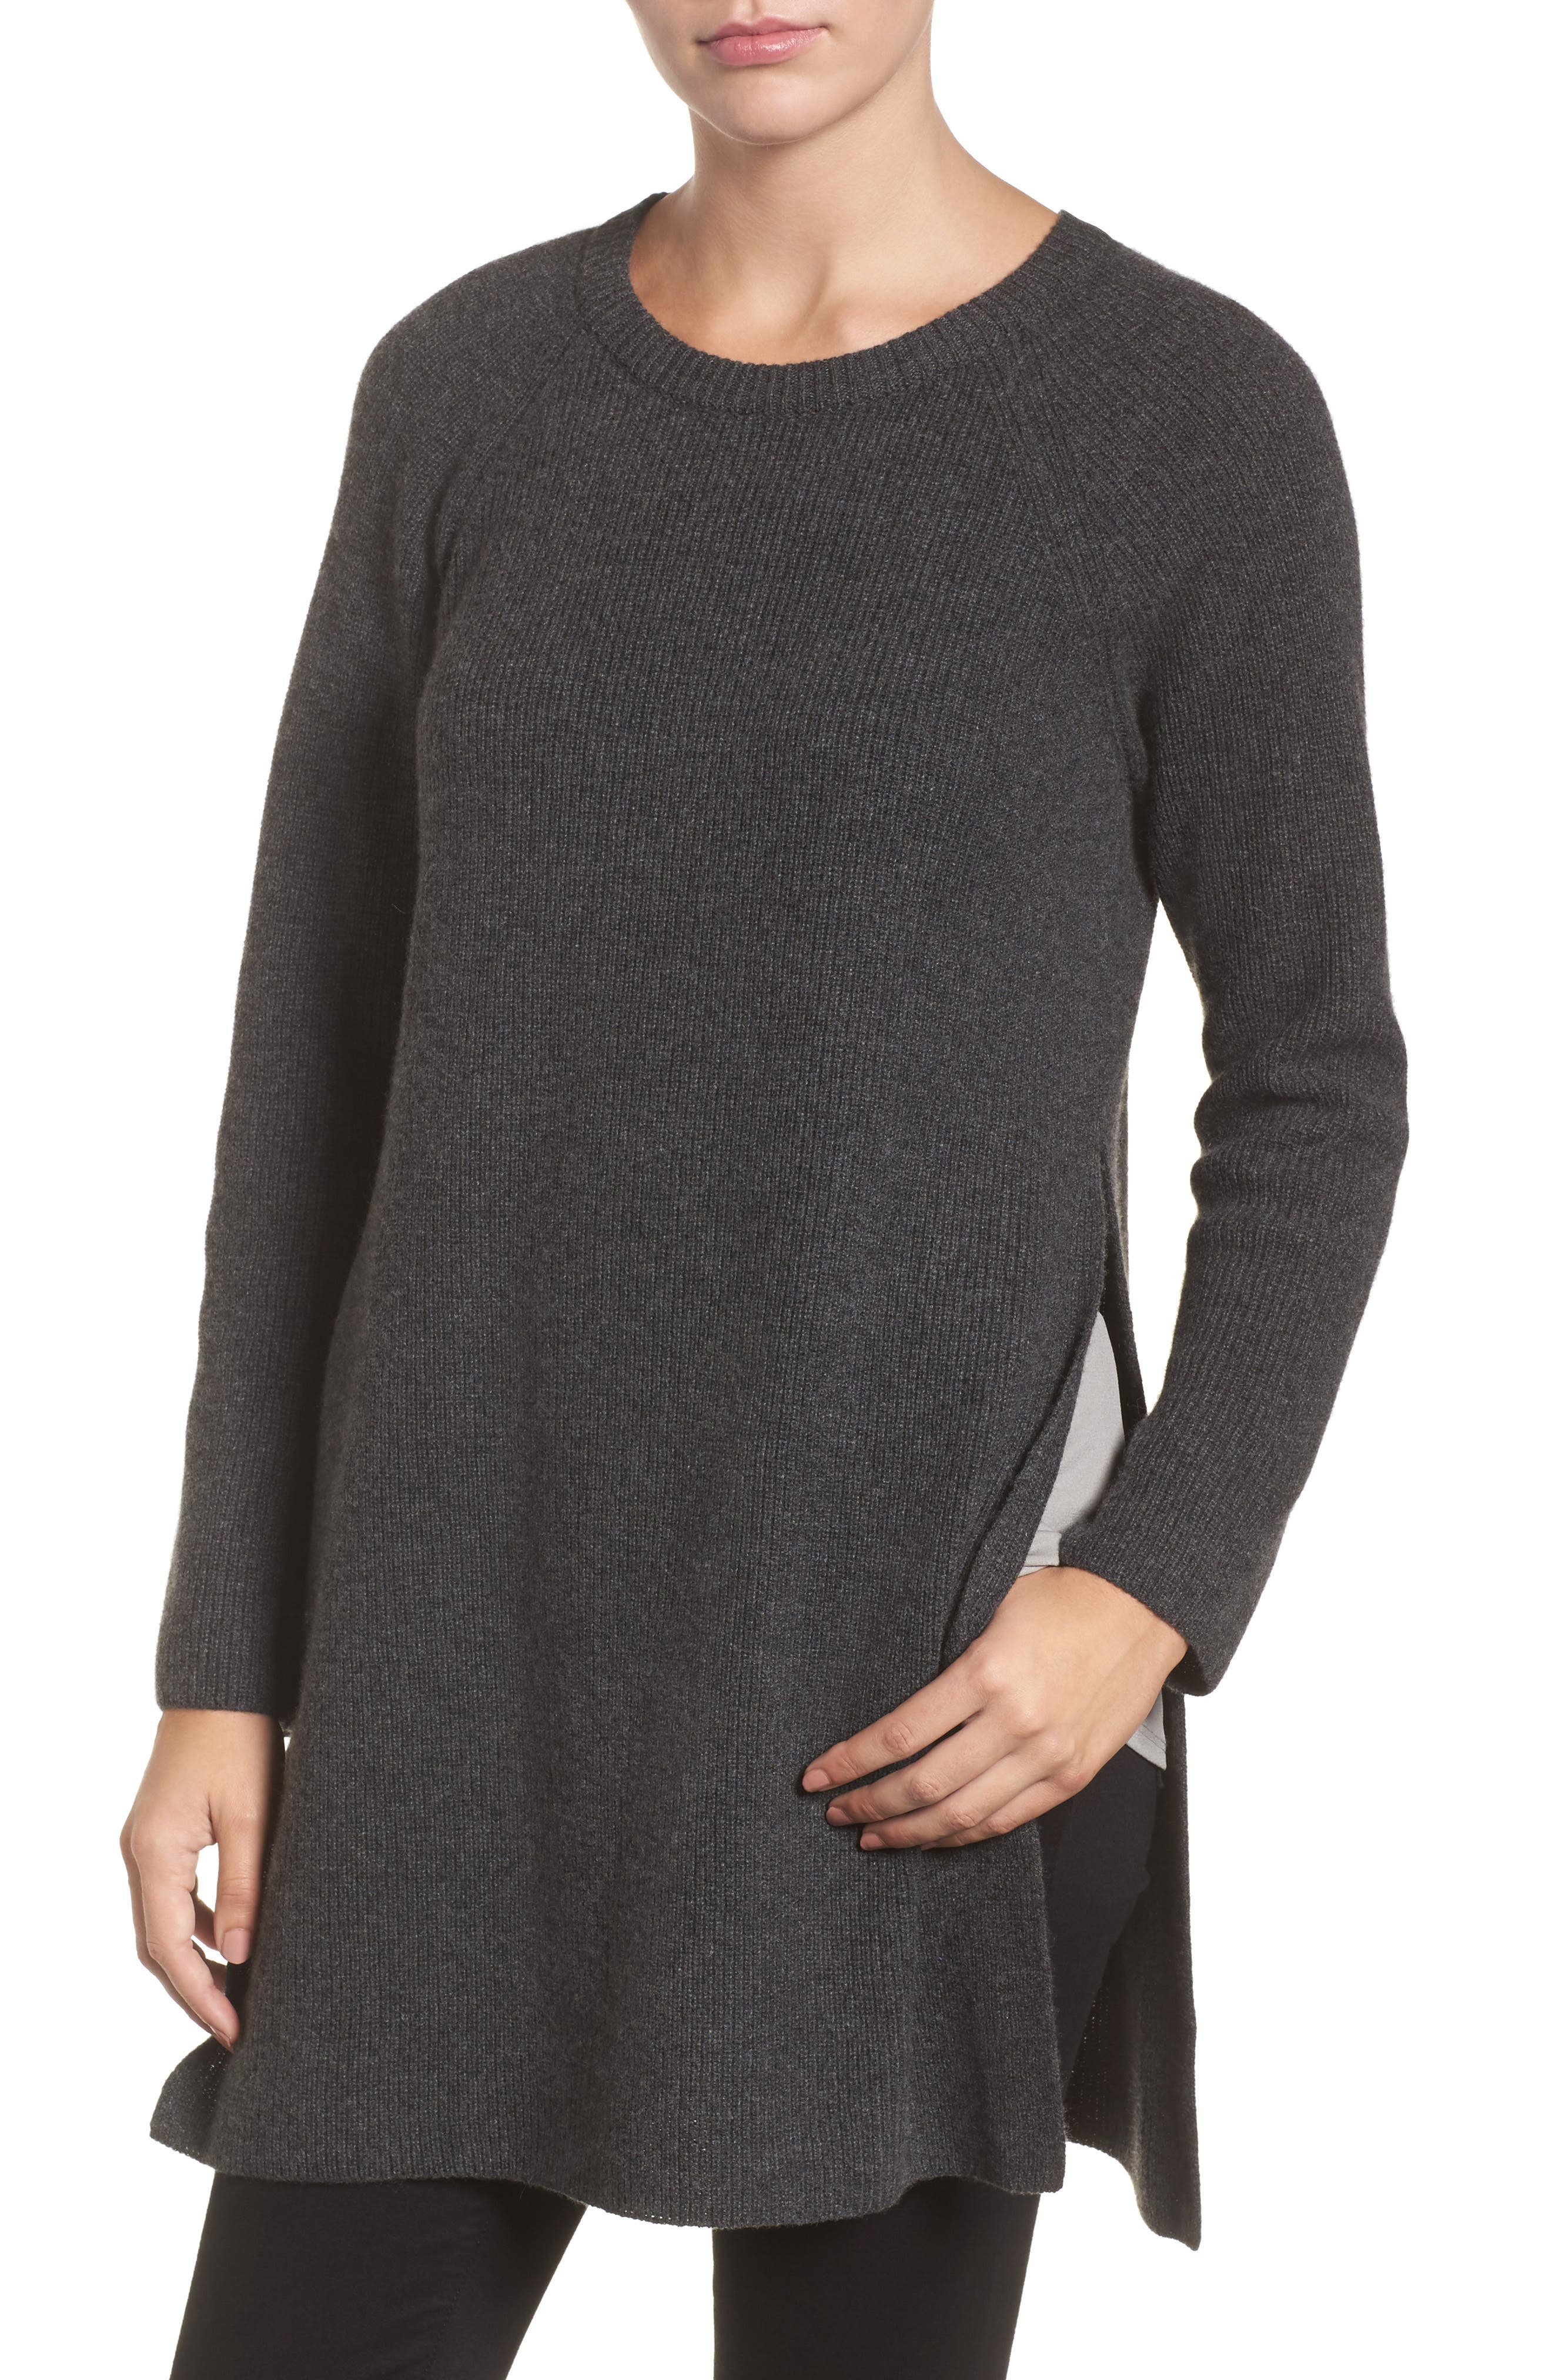 Alternate Image 1 Selected - Eileen Fisher Cashmere Tunic Sweater